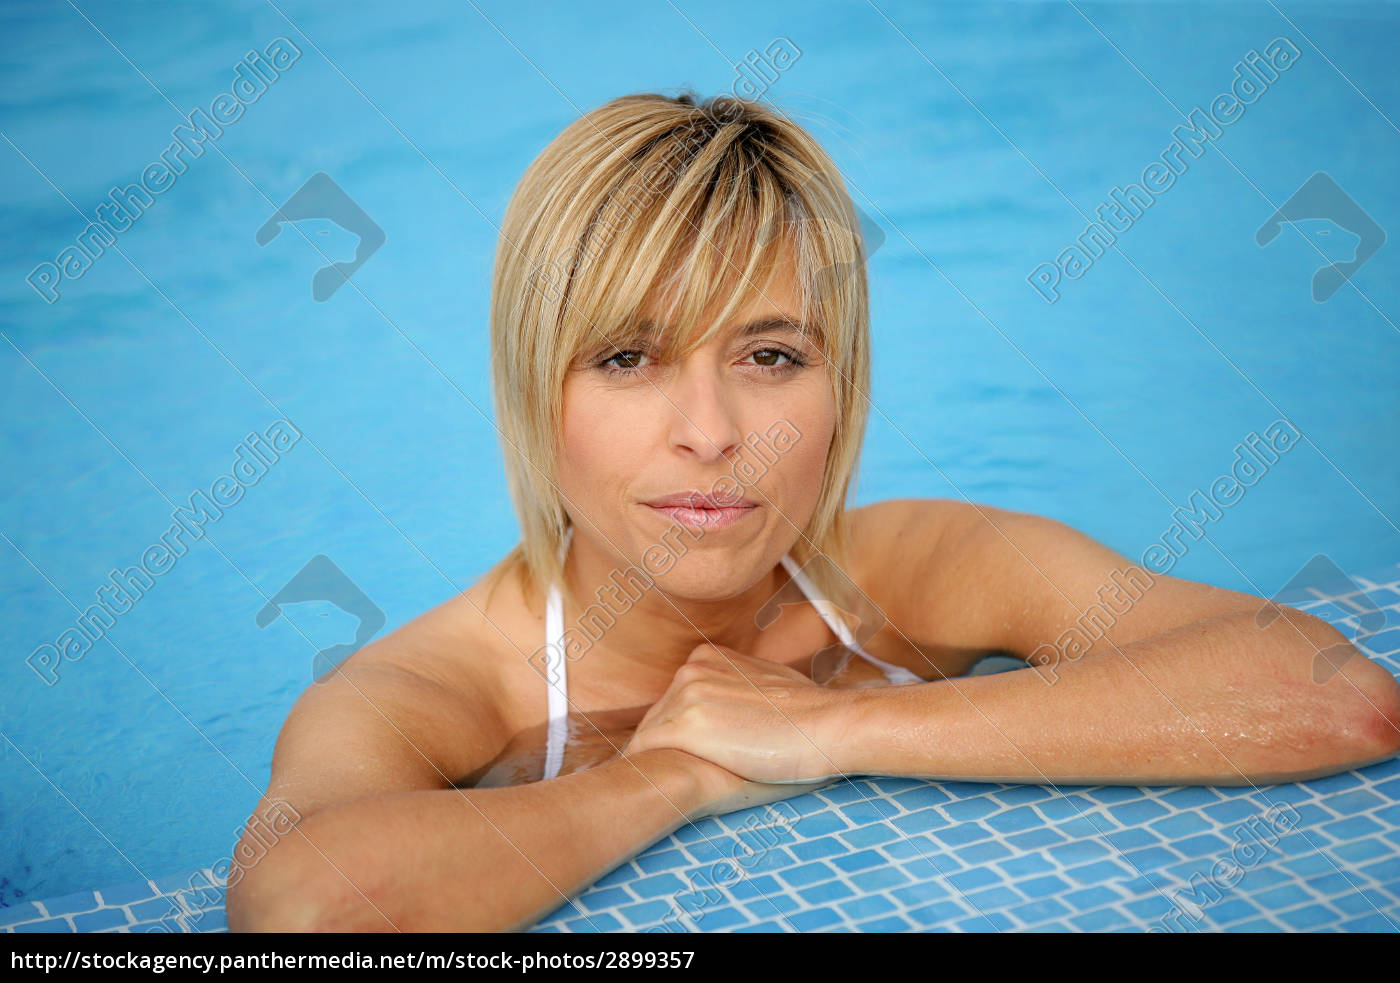 portrait, of, a, woman, bathing, at - 2899357